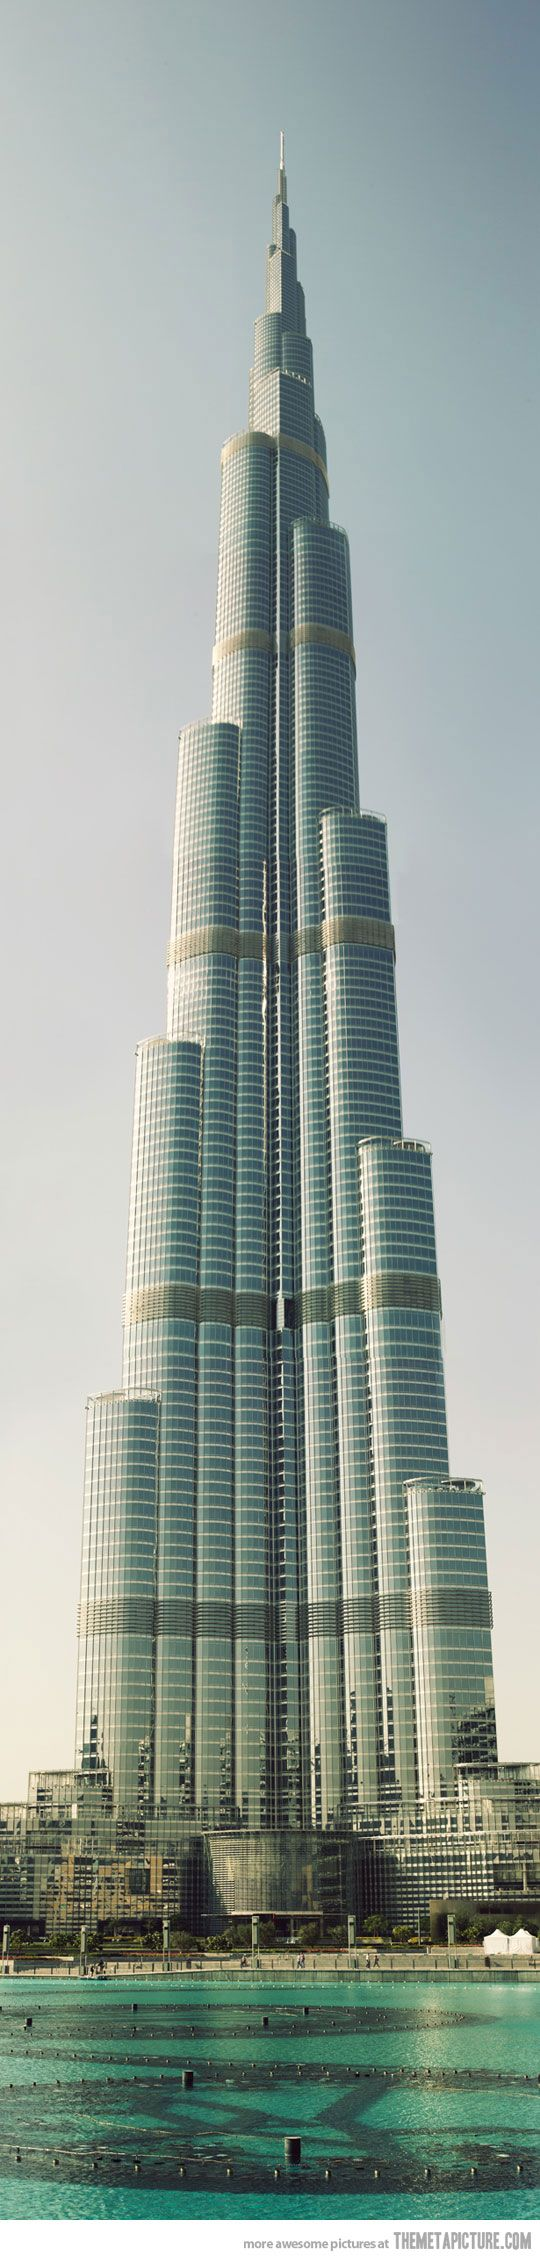 Burj Khalifa: The tallest building in the world. I'll take an office on the 2335th floor please~